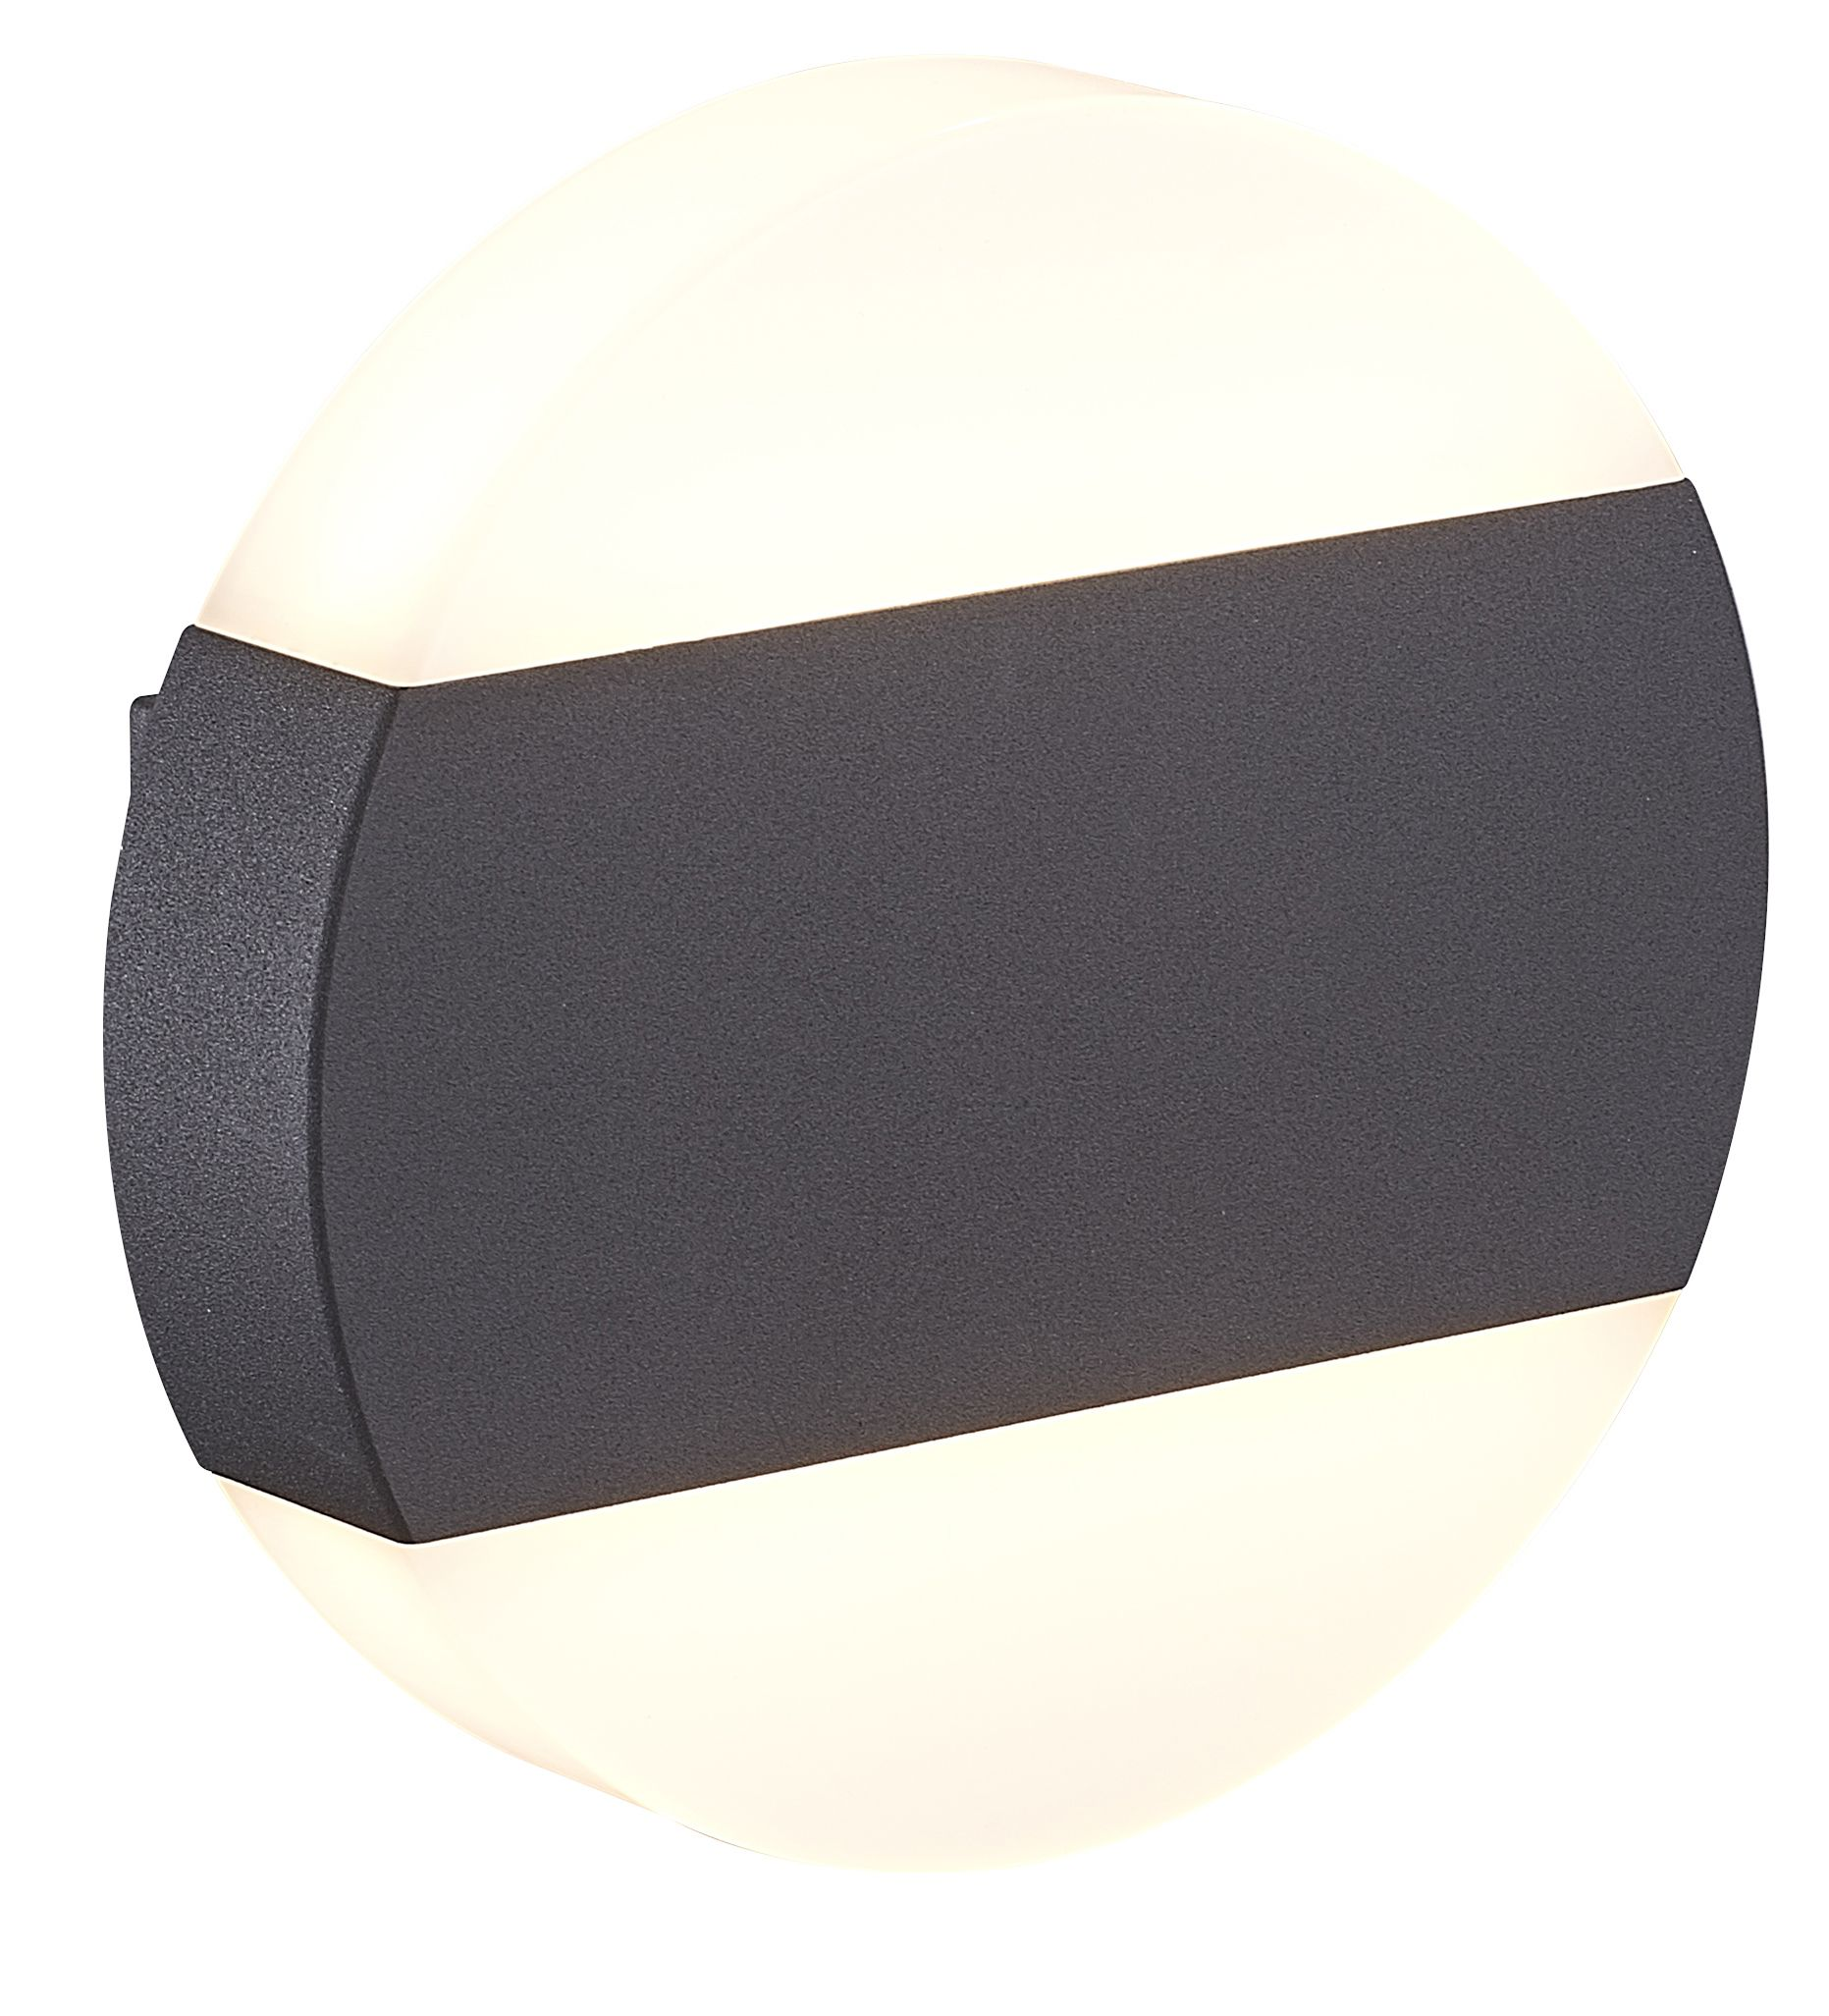 Blooma Graeae Black Mains Powered External Wall Light